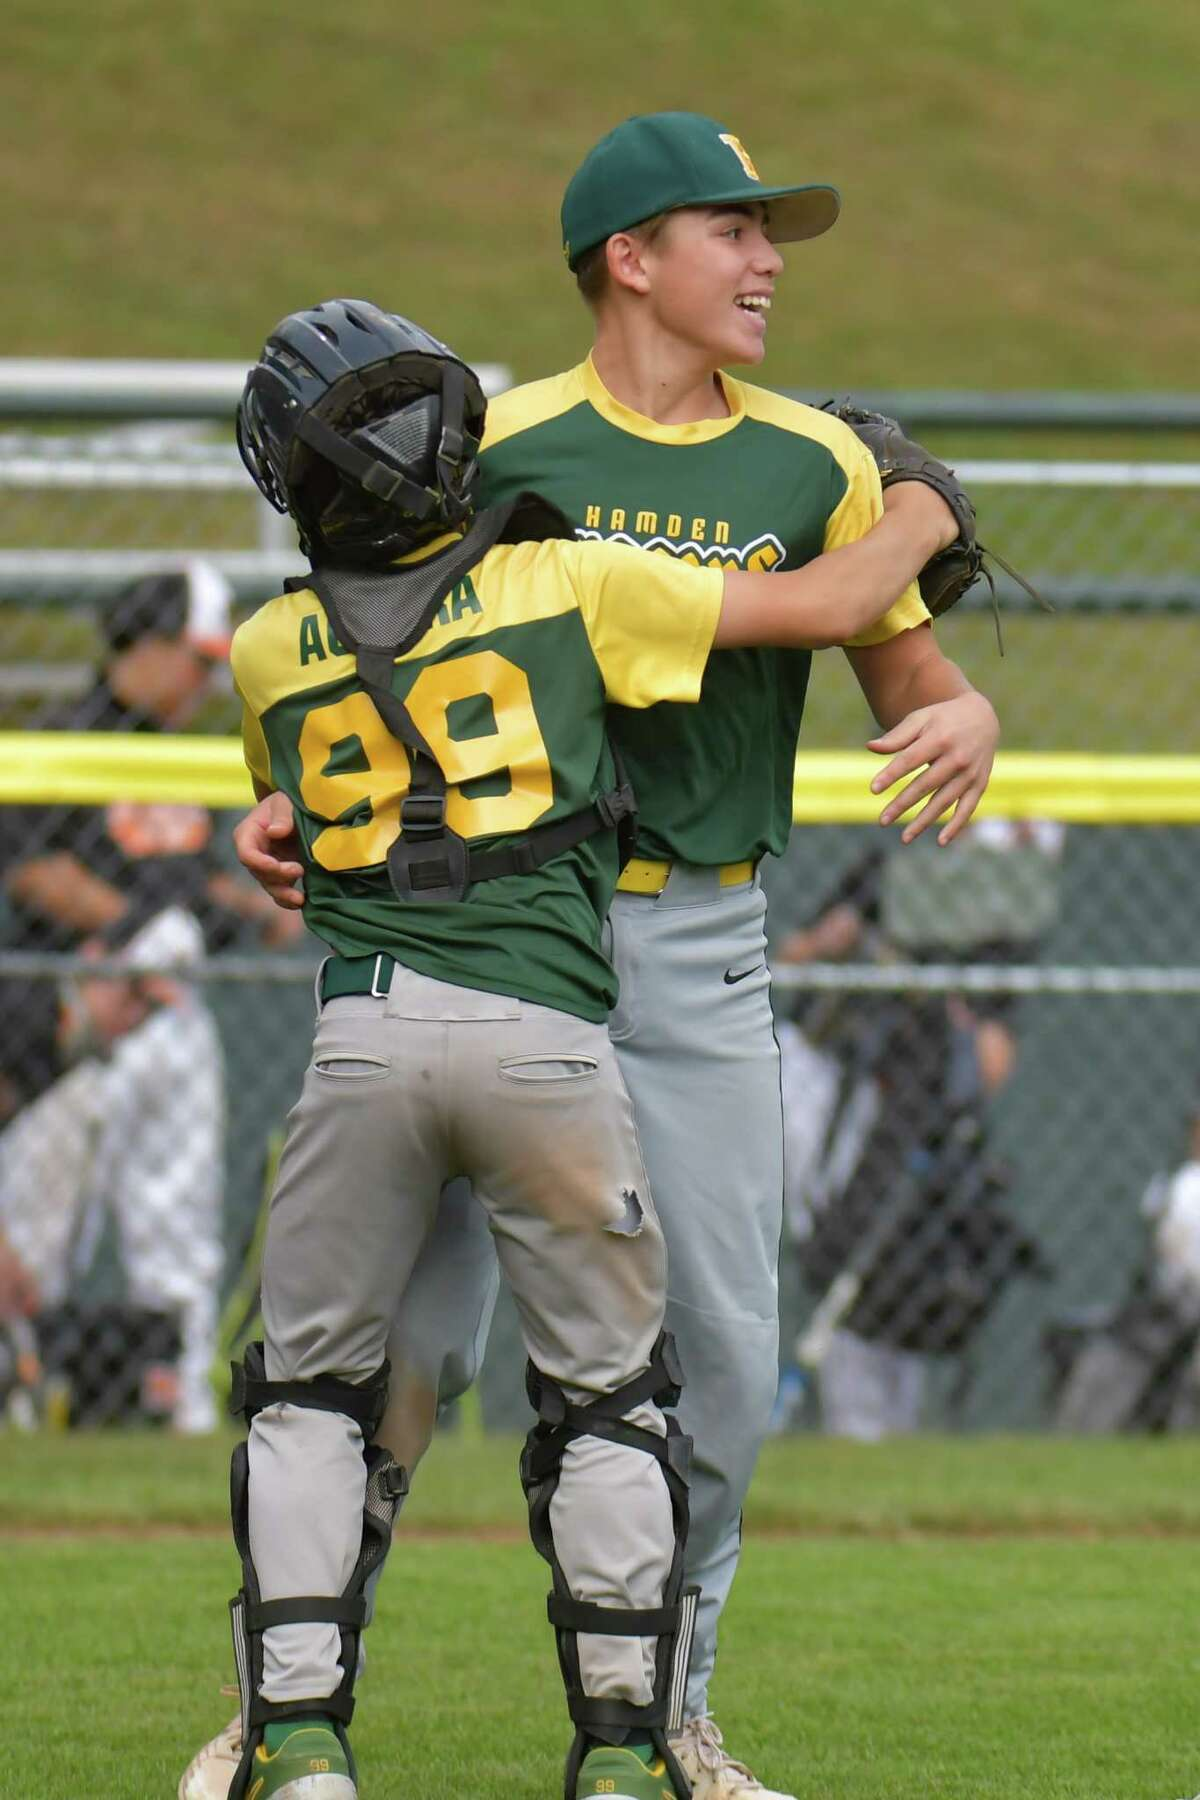 Pitcher Nate Marczak (18) of Hamden is congratulated by teammate AJ Aurora after winning the Connecticut Little League Championship on October 11, 2020 at Springdale Little League Field in Stamford, CT.